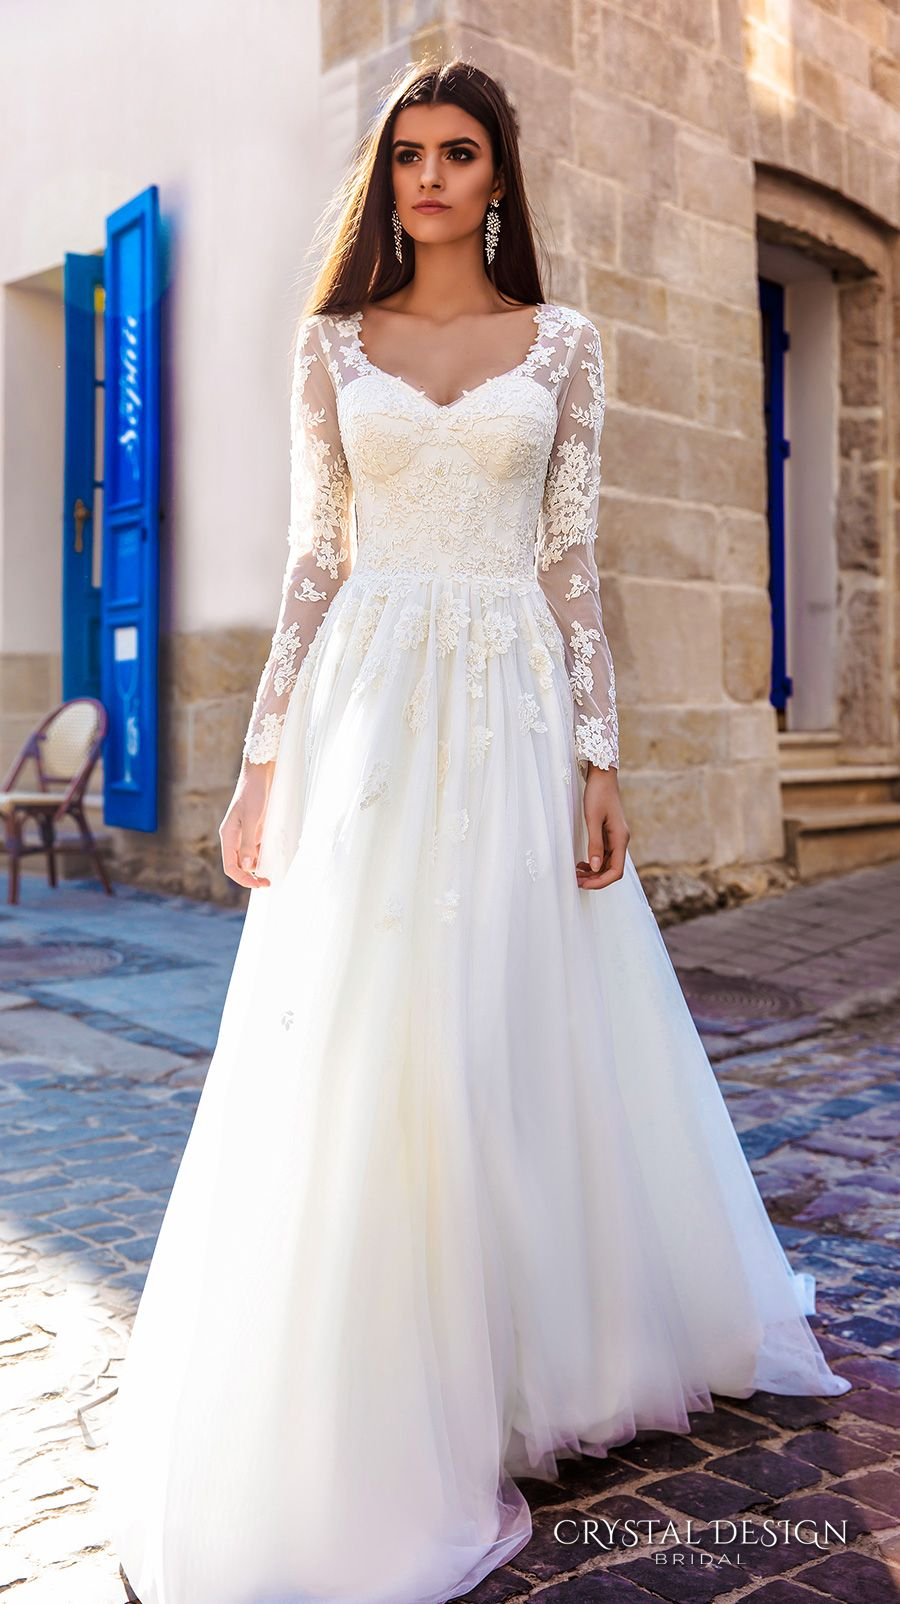 f48cade0990 crystal design bridal 2016 sheer long sleeves v neck lace bodice corset  tulle skirt elegant modified a line weding dress chapel train (siena) mv